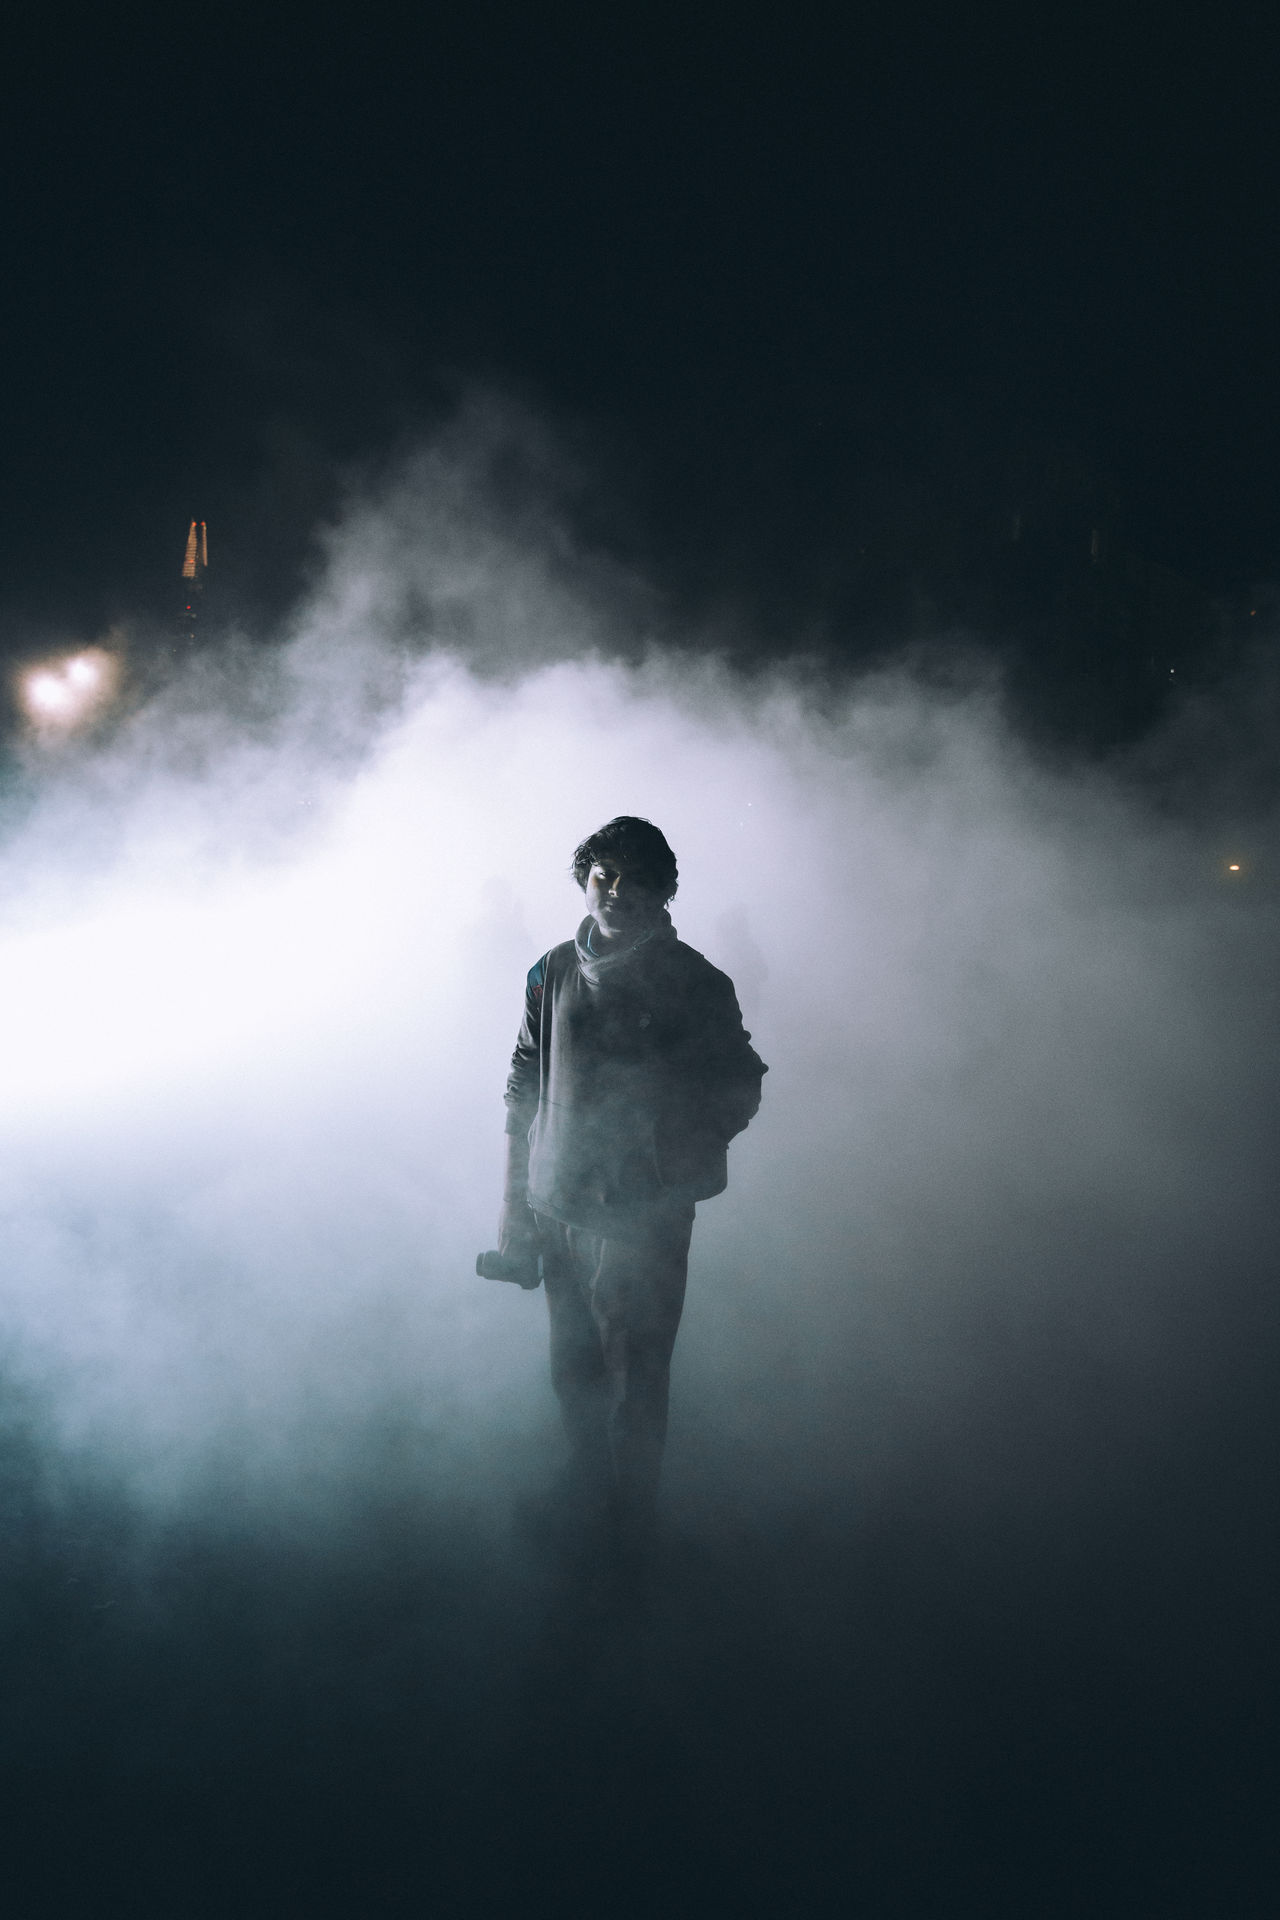 Fog vibes Art Check This Out Colors Dark Explore Exploring EyeEm EyeEm Best Shots Fog Full Length Illuminated Night One Person Outdoors People Portrait Real People Side Lighting Smoke - Physical Structure Street Streetphotography Surreal Taking Photos Young Adult